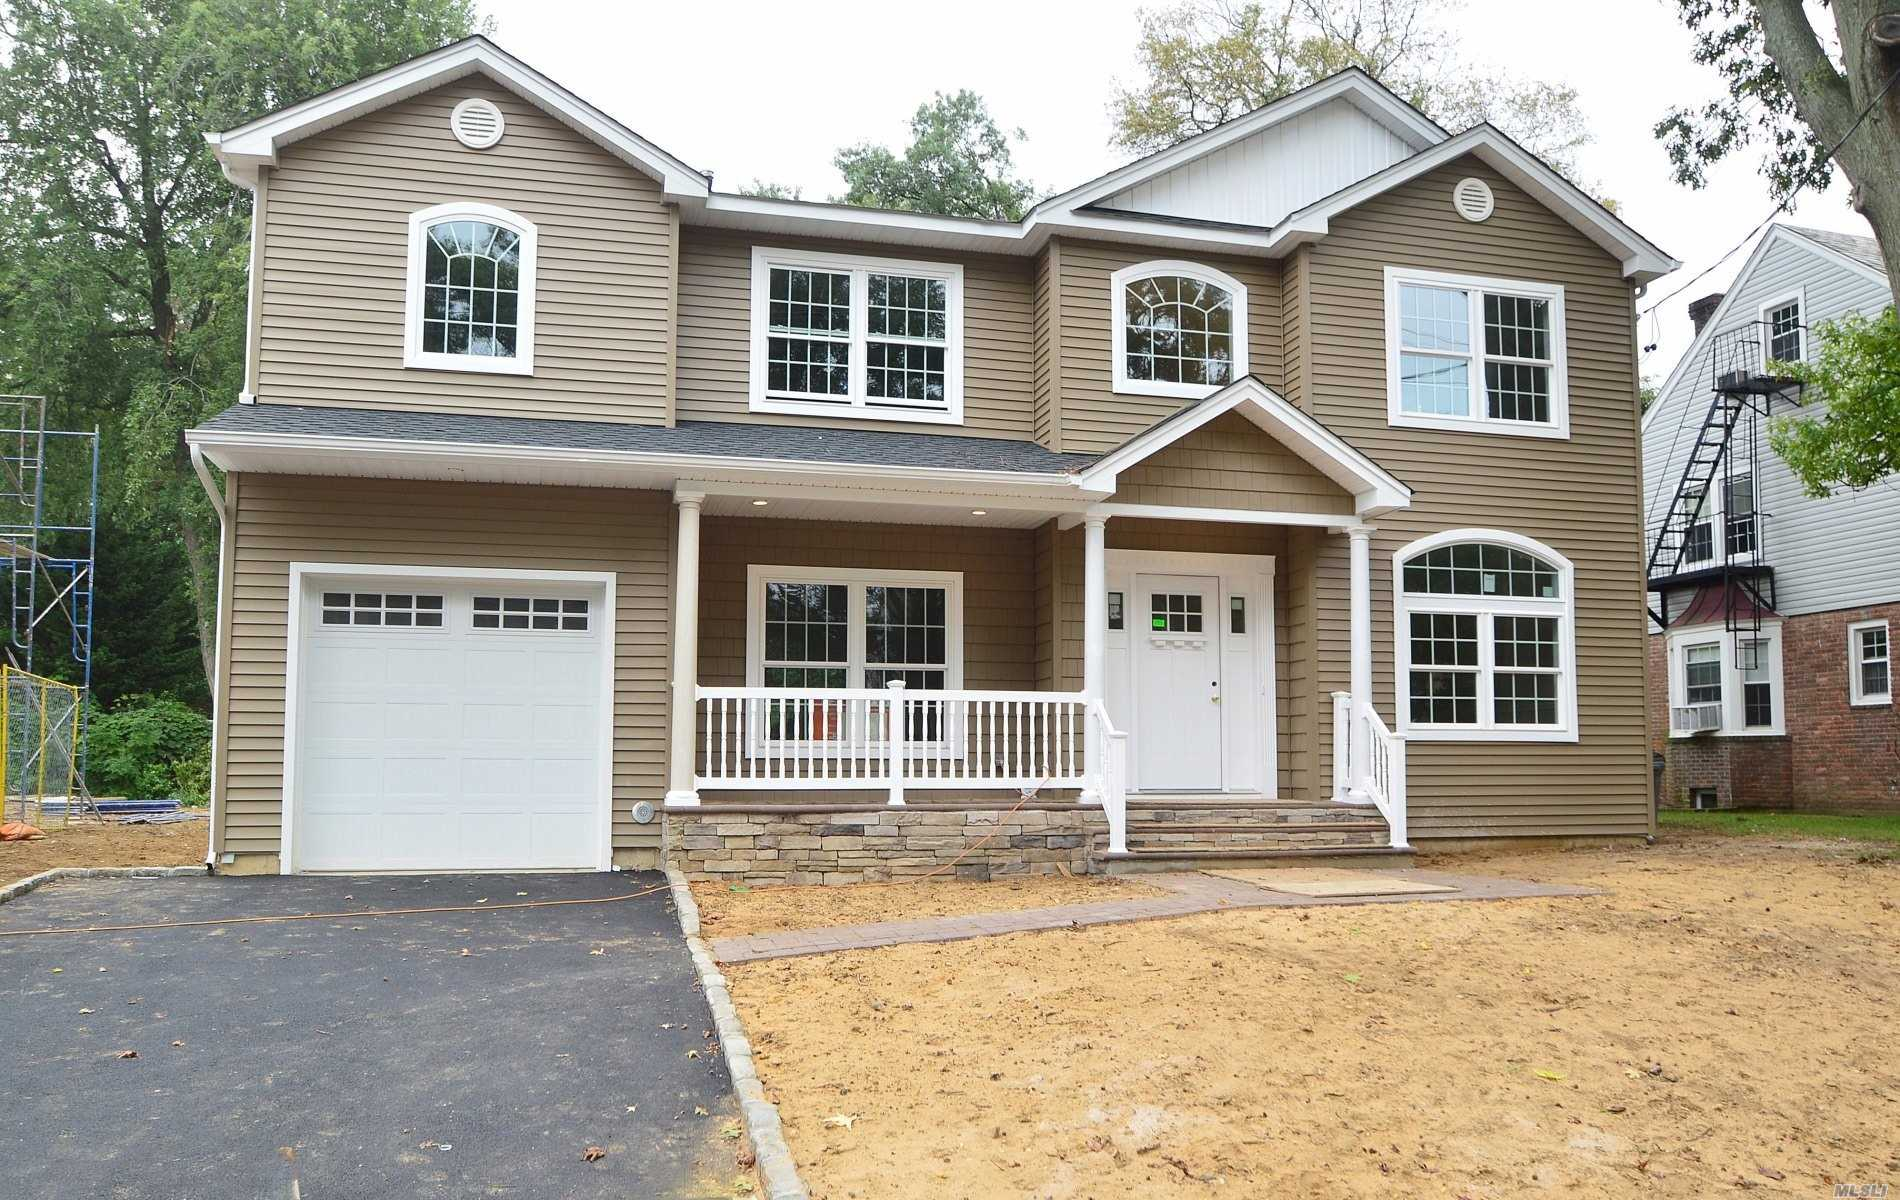 New Construction To Be Built, Sd 14, Grand 4Br Center Hall Col, W Open Fl Plan, Wood Fls, Fam Rm W/Fireplace, Kitchen W Center Is & Granite Counter Tops, Ss Appliances, Master Bedroom W/Mbth Suite, Laundry On 2nd Fl, Full Bsmt With 8 Ft Ceilings, 3, 100 Approx Sq Ft, Personalize Your Dream Home. Taxes To Be Determined,  Plans May Change Based On Codes, Floor Plans Attached